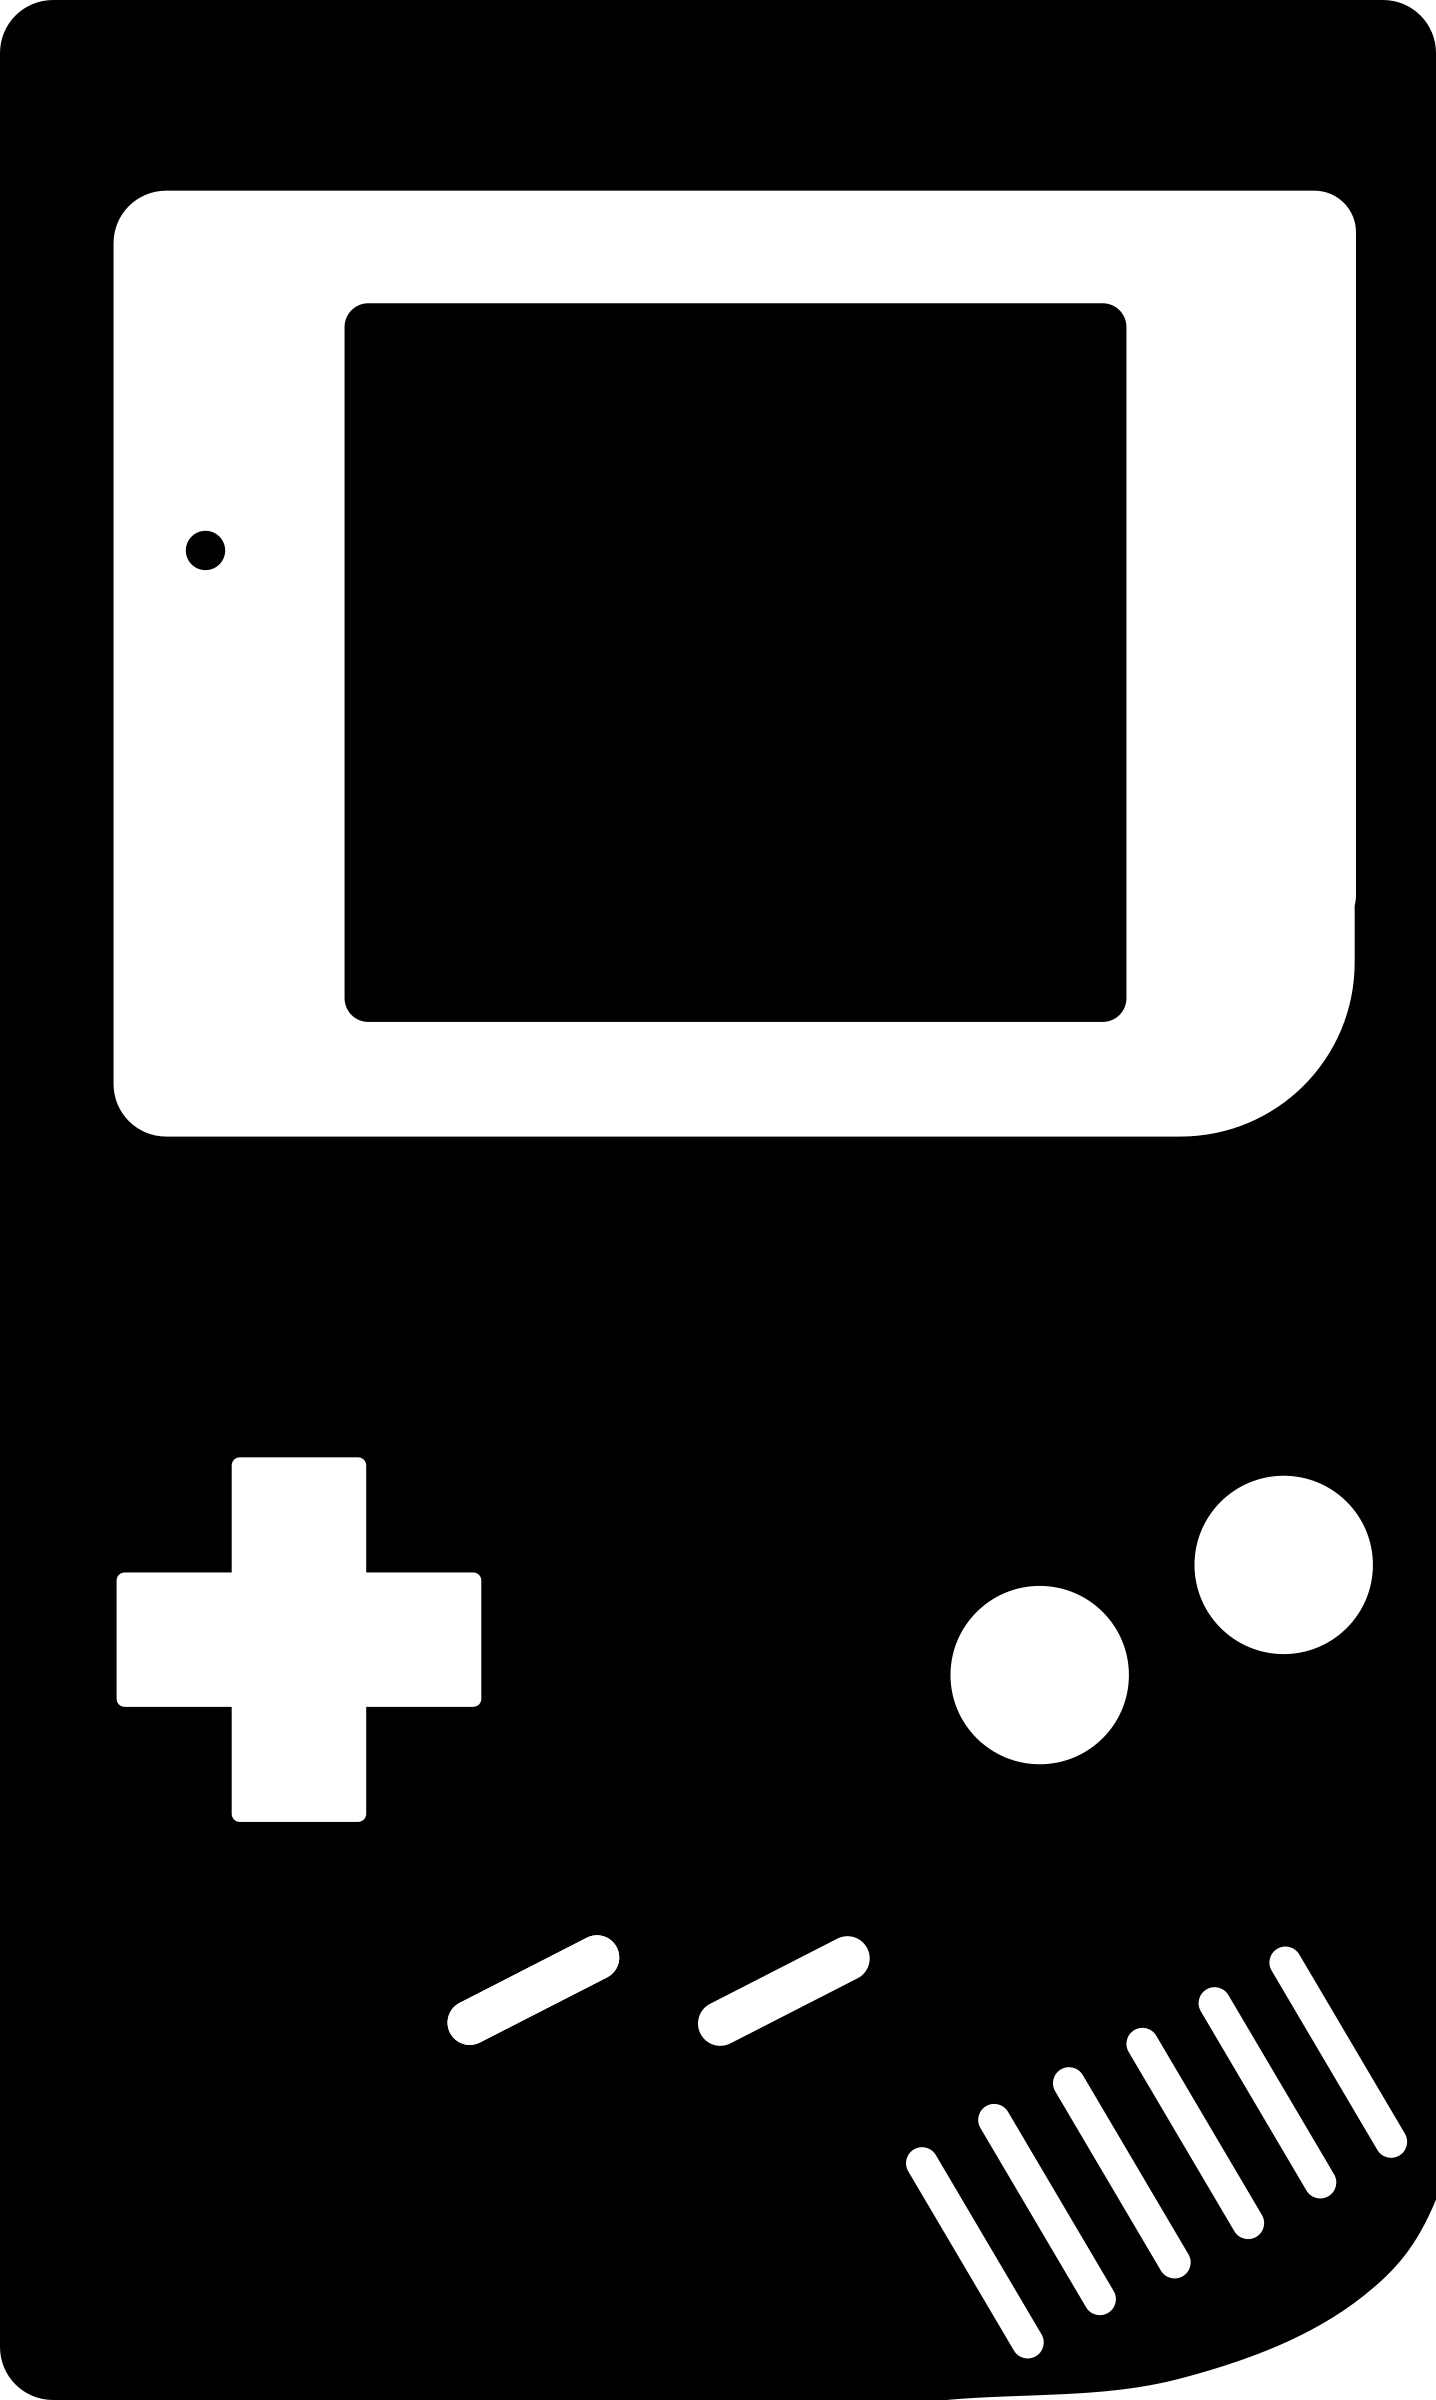 Gaming clipart silhouette. Gameboy big image png